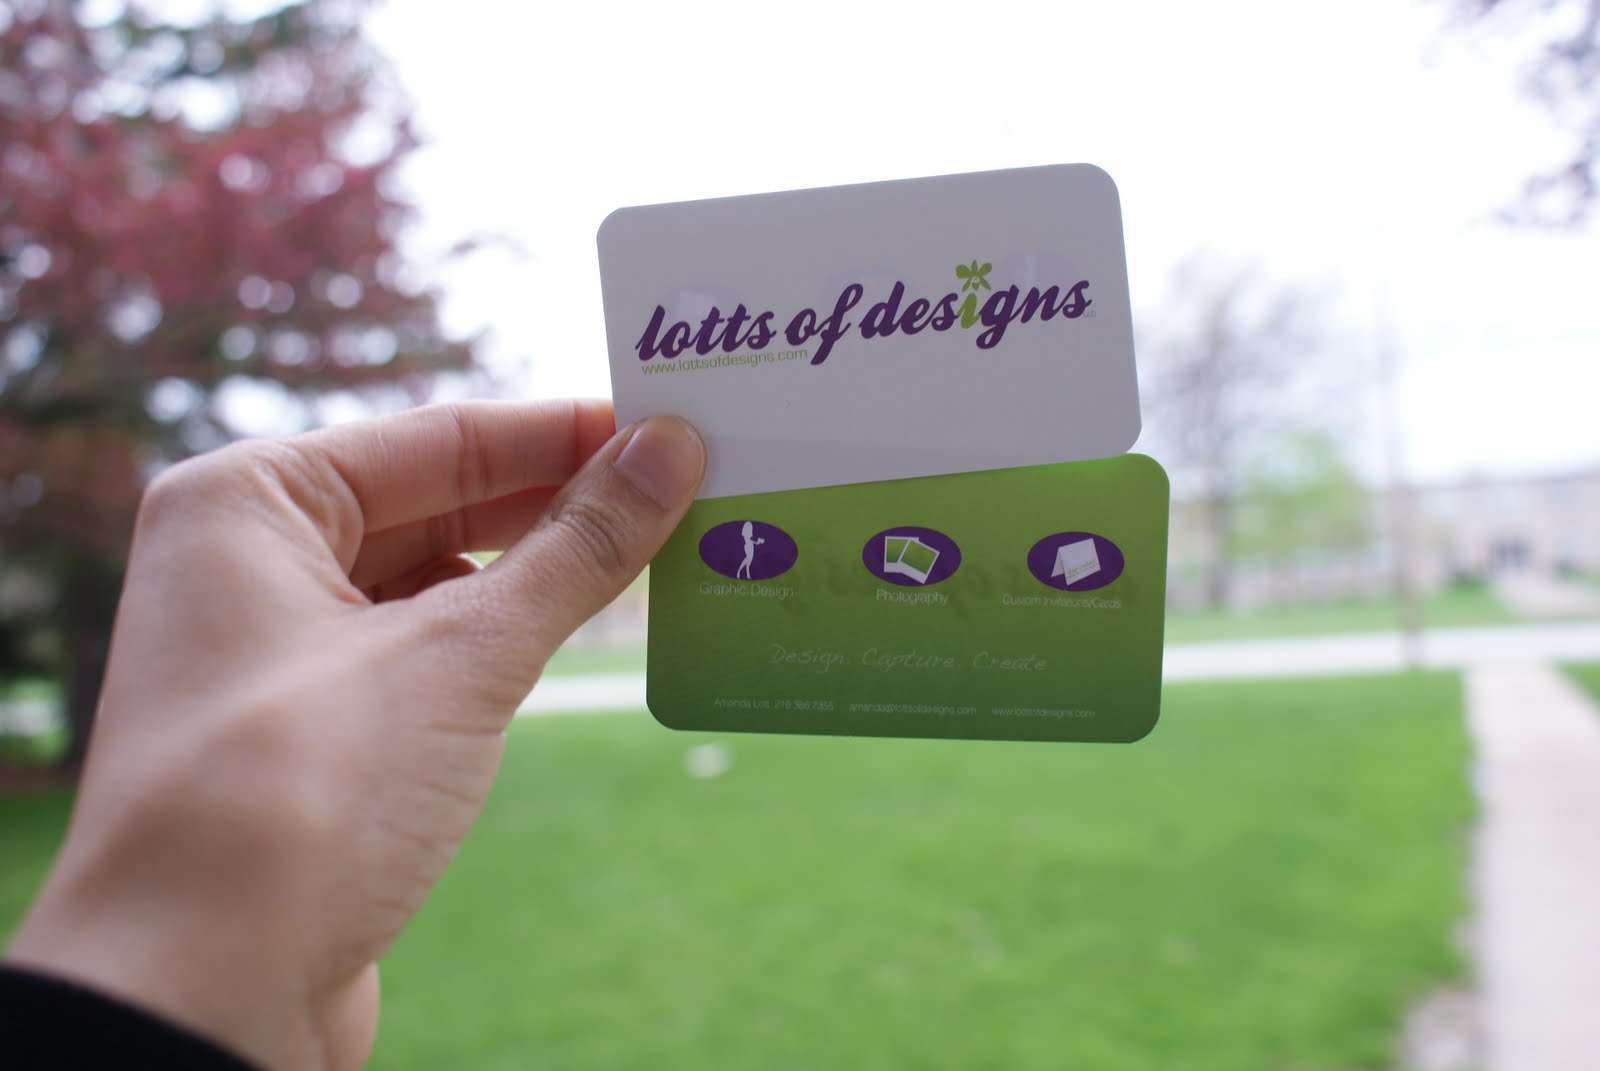 Lotts of designs: Lott of Designs business cards are here!!